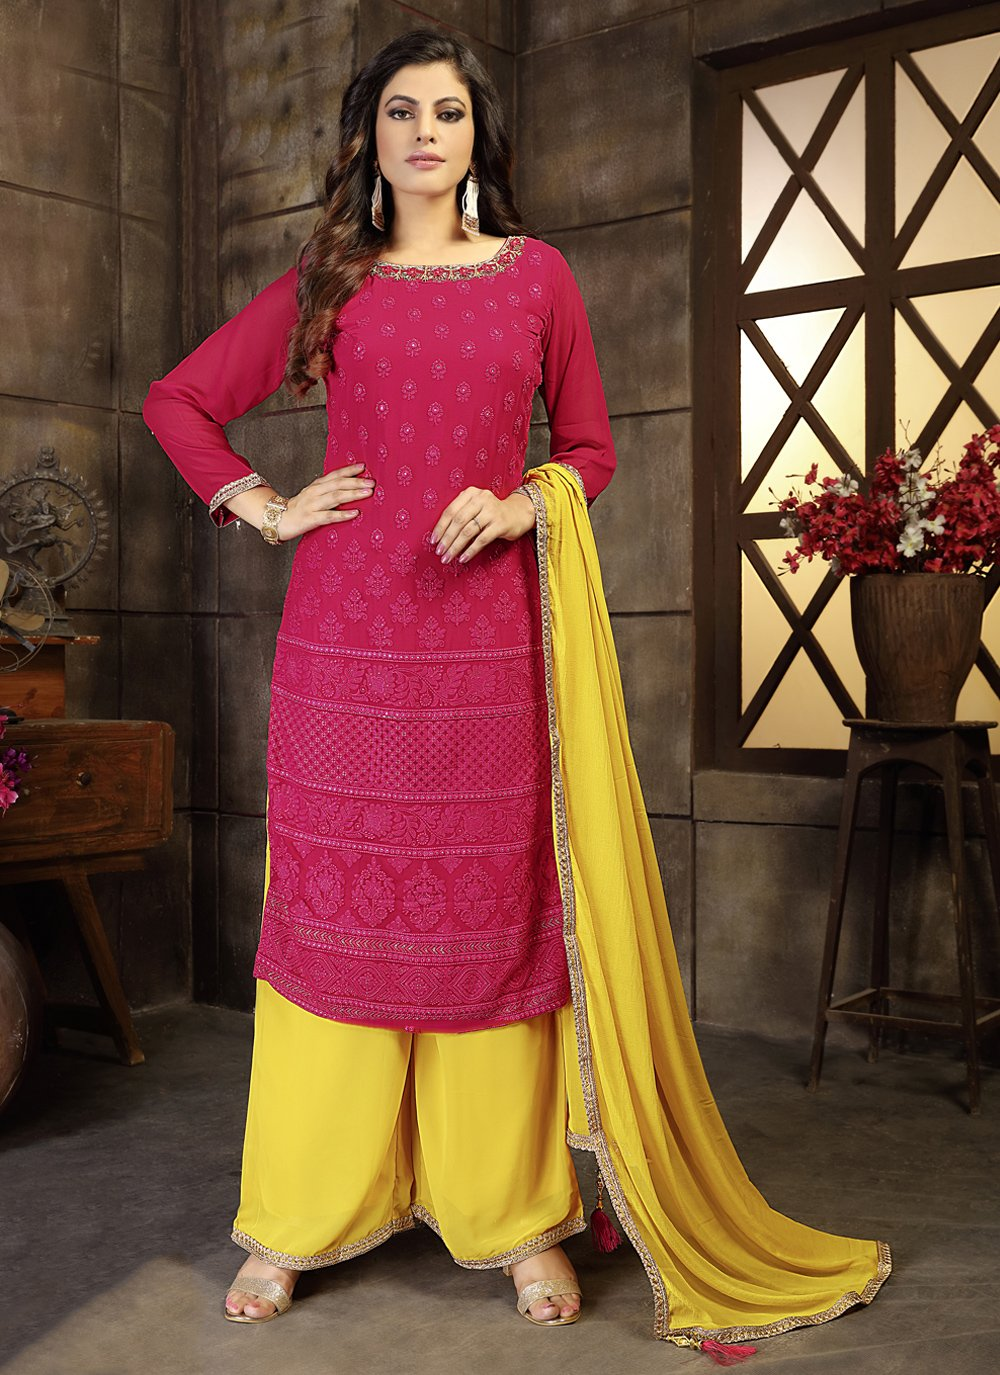 Georgette Embroidered Rani Readymade Suit